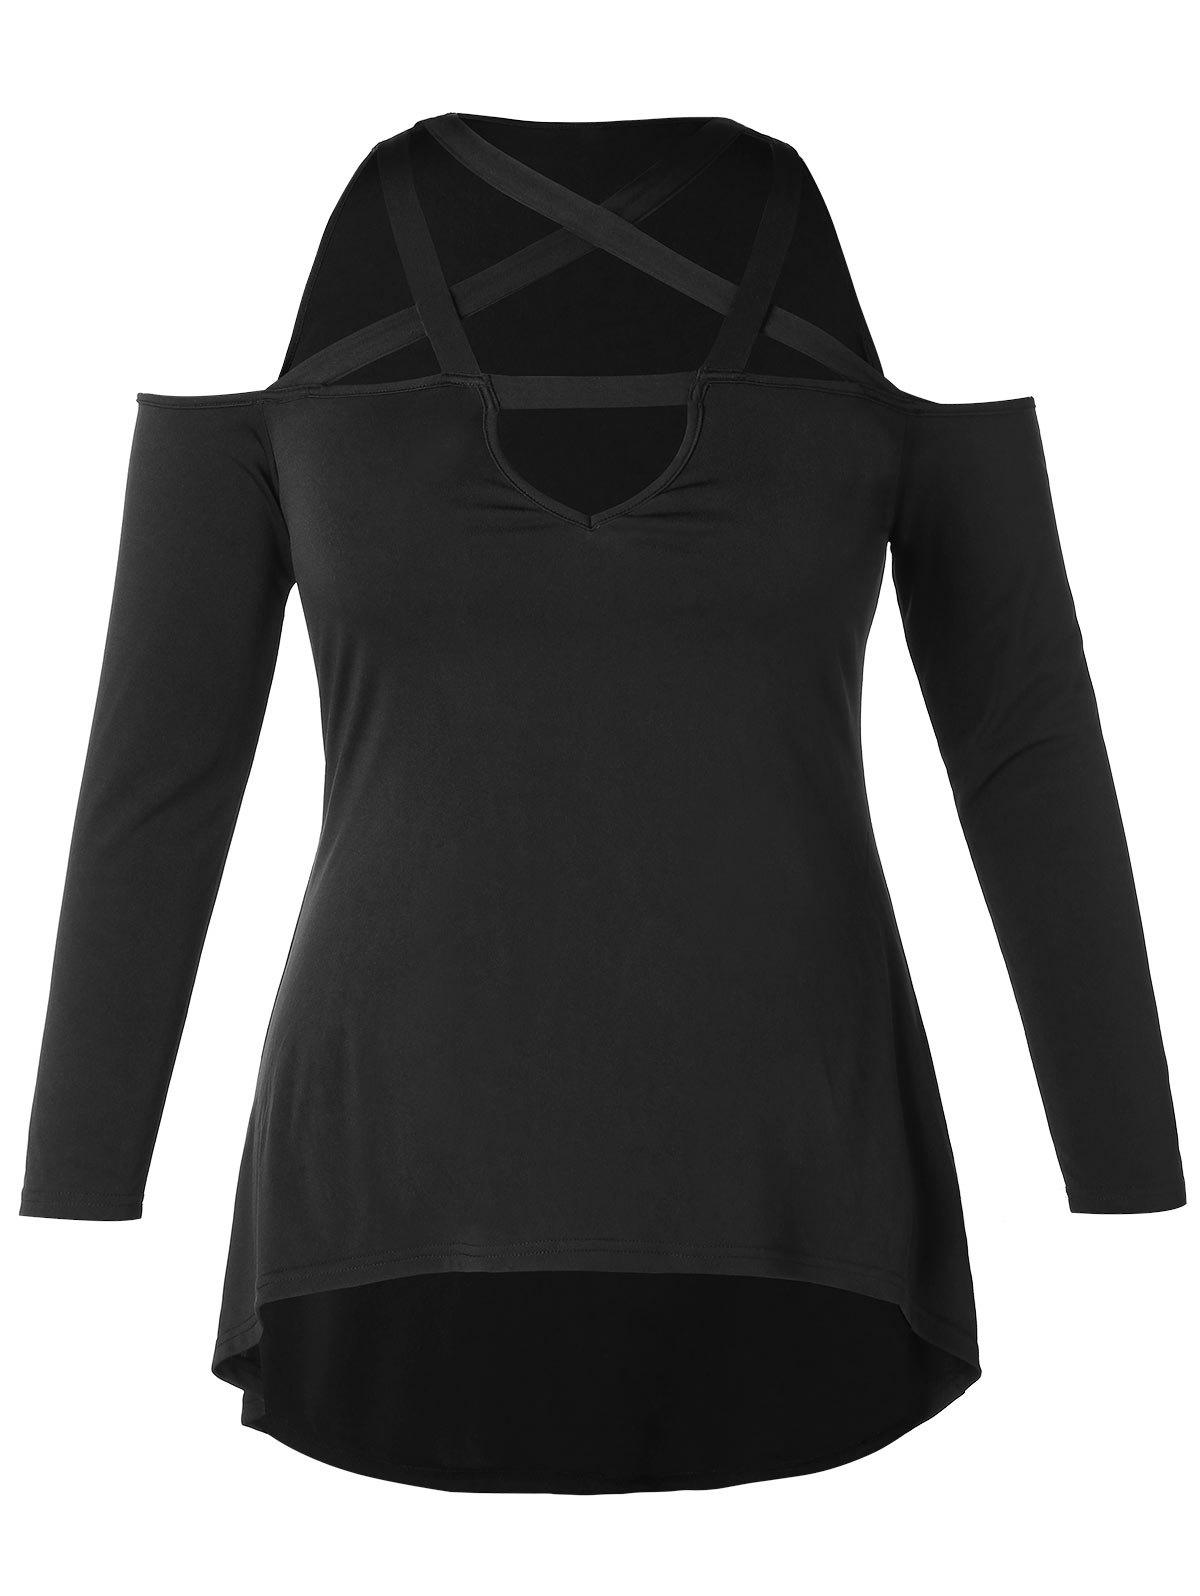 New Plus Size Long Sleeve Criss Cross Open Shoulder T-shirt